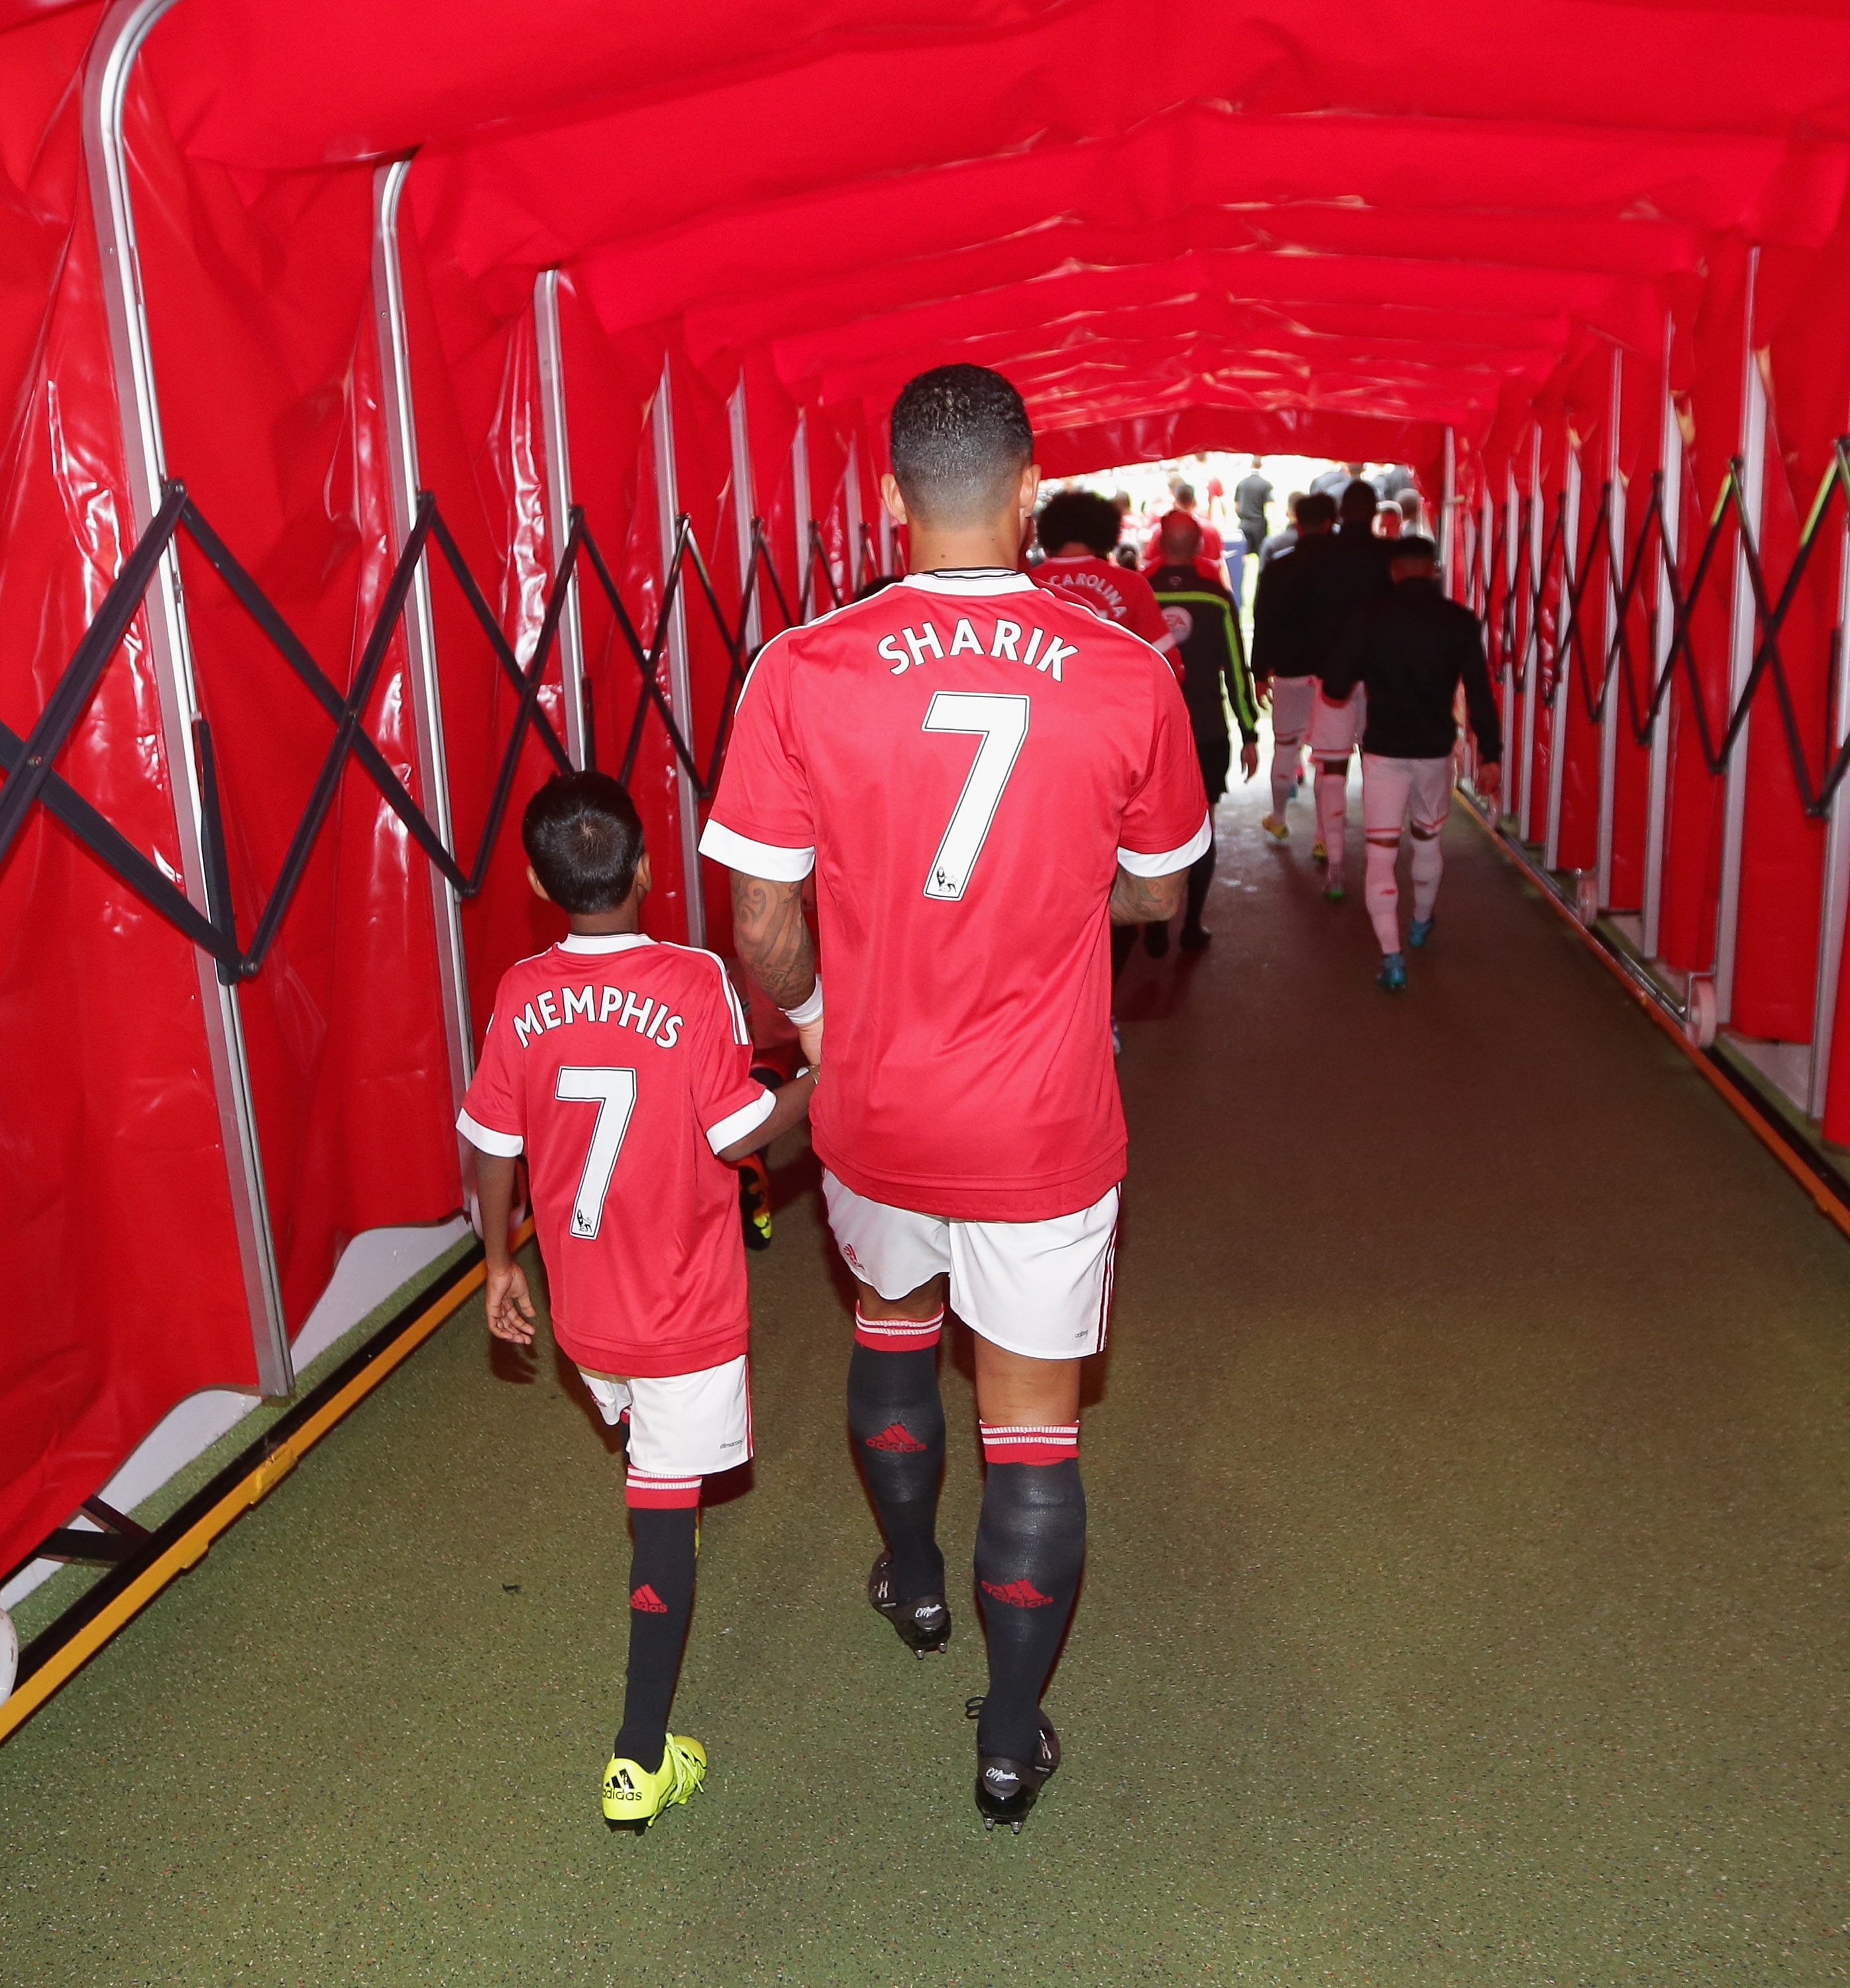 Chevrolet to Bring 11 Child Mascots to Manchester United Match